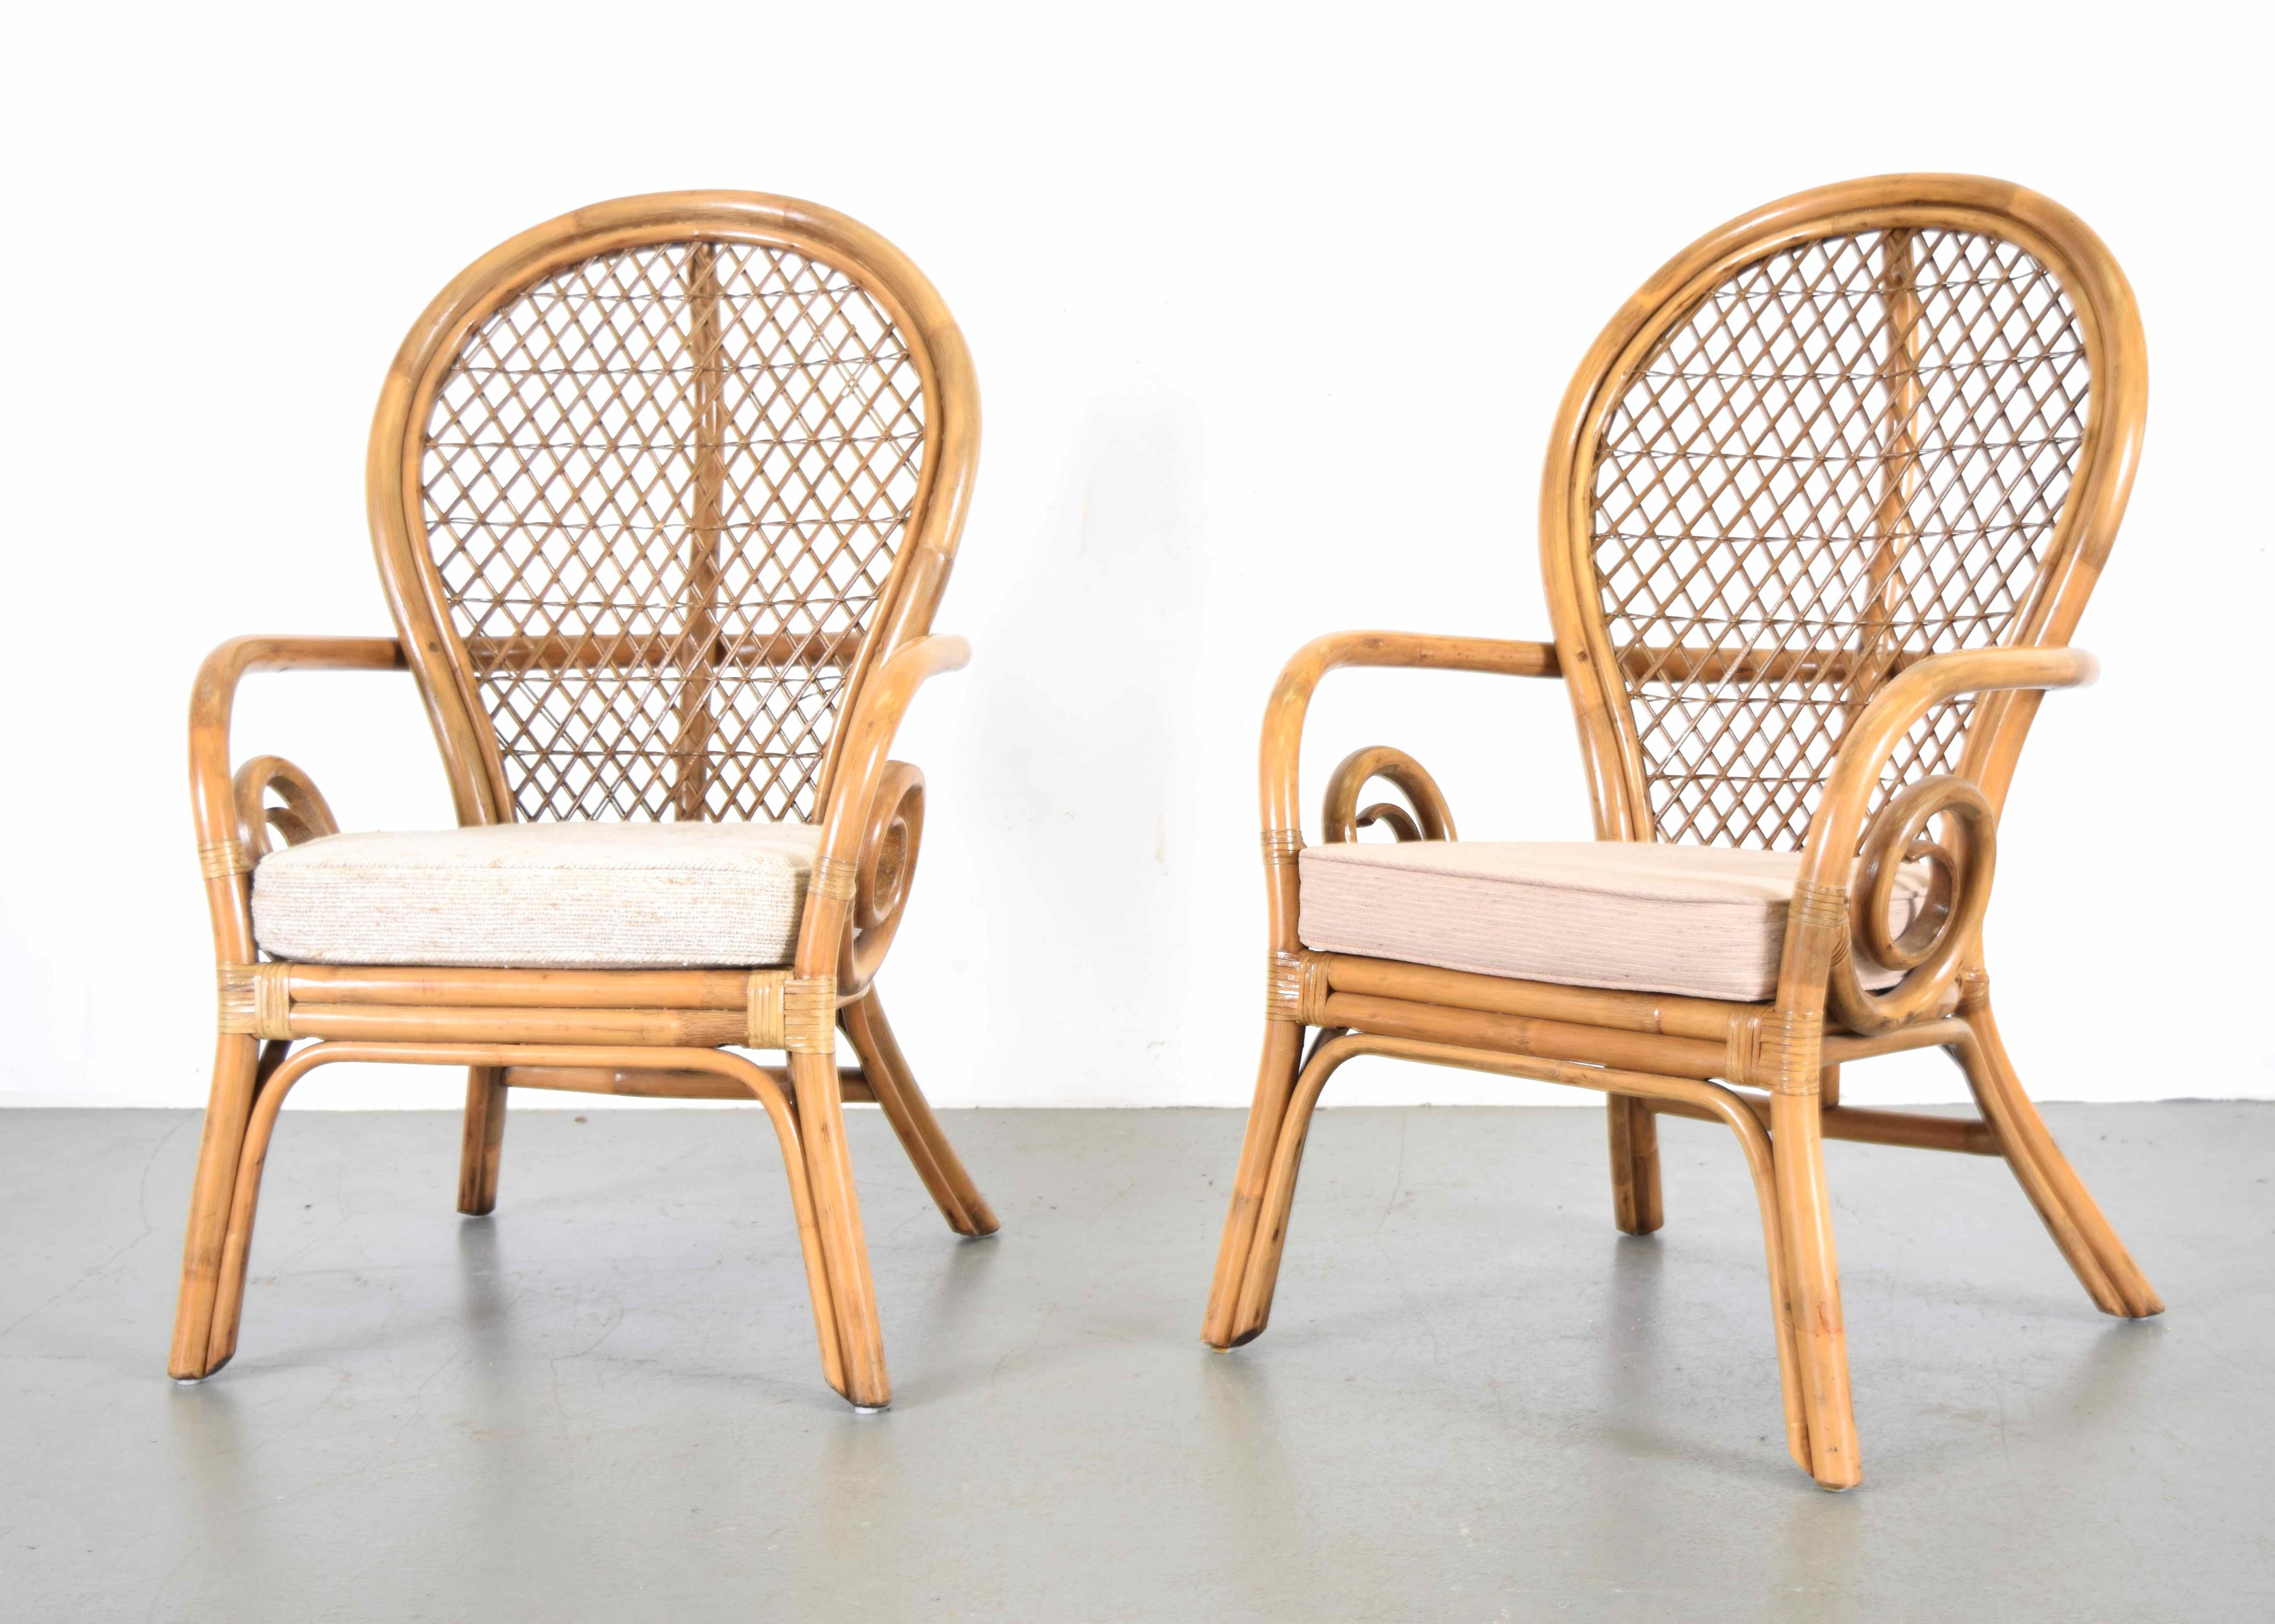 Delightful High Back Rattan Chairs